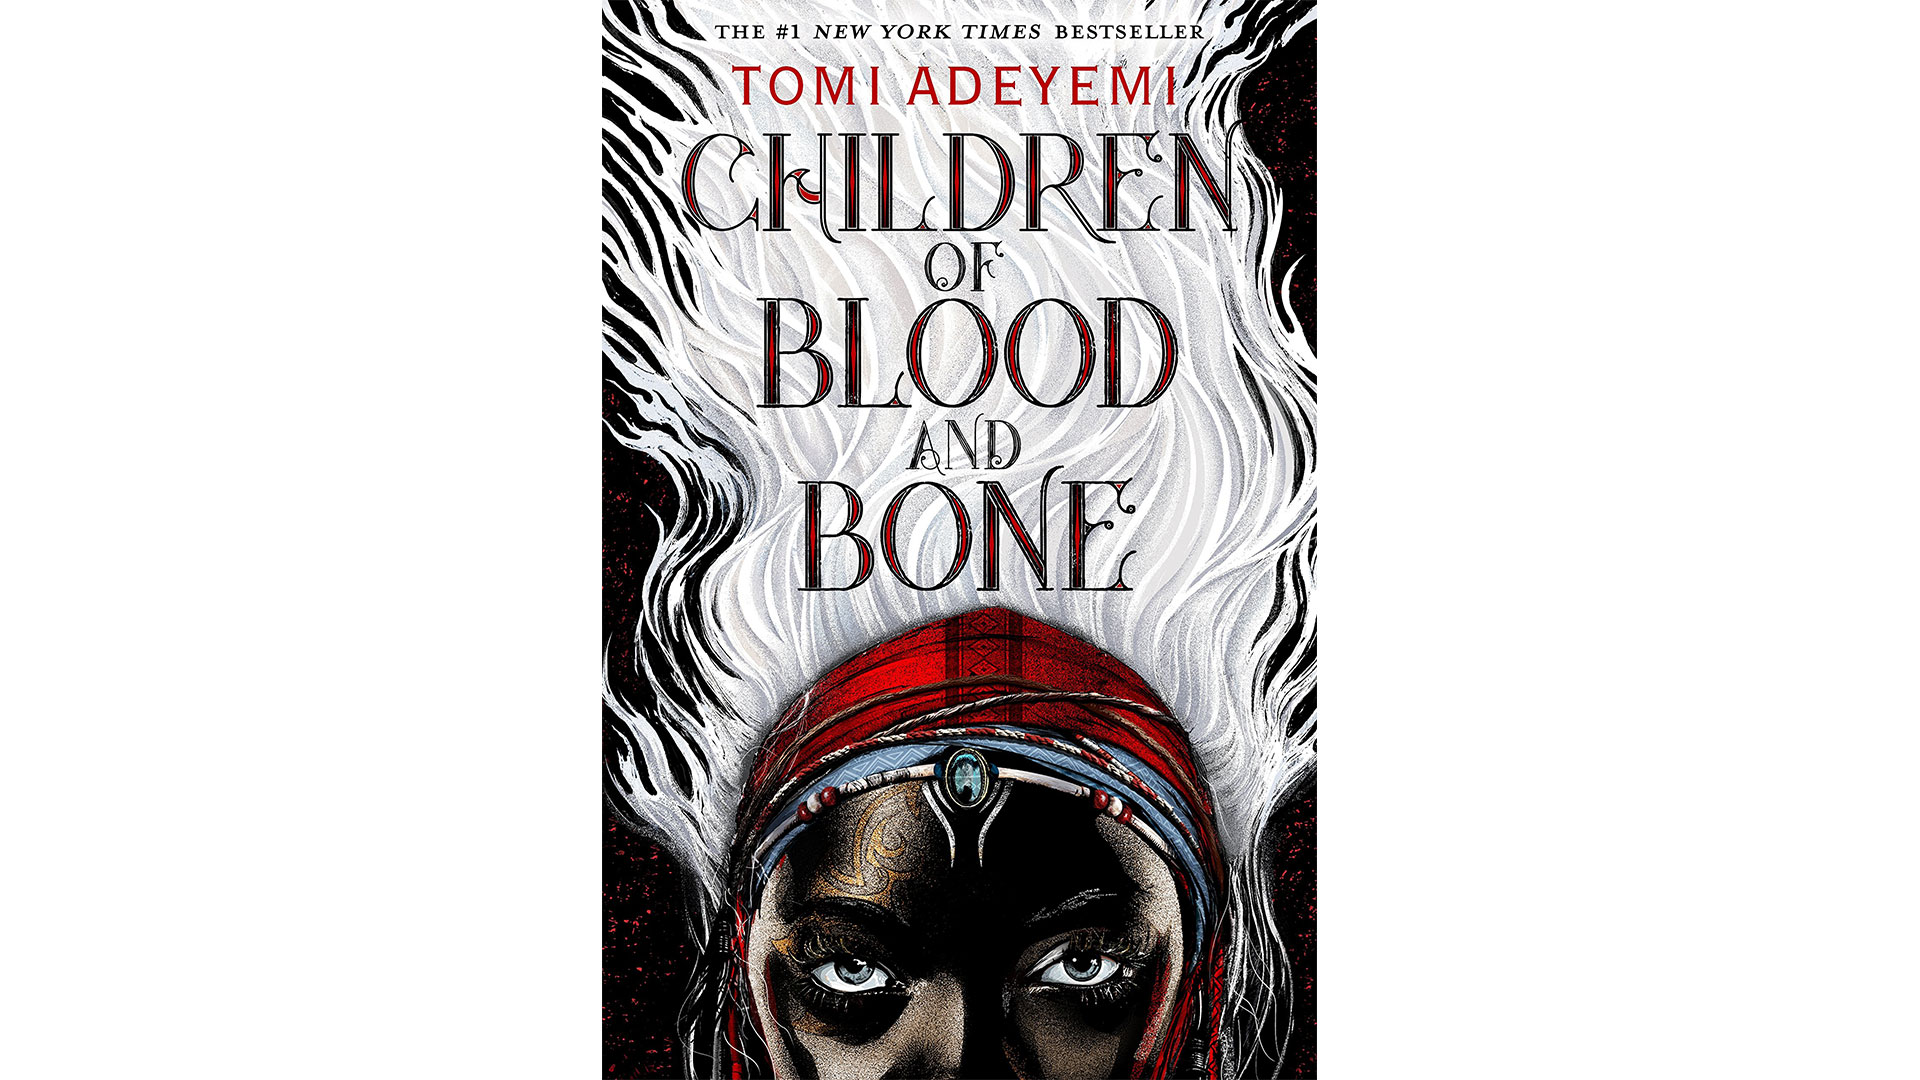 Amazon Best Books 2018 Children of Blood and Bone